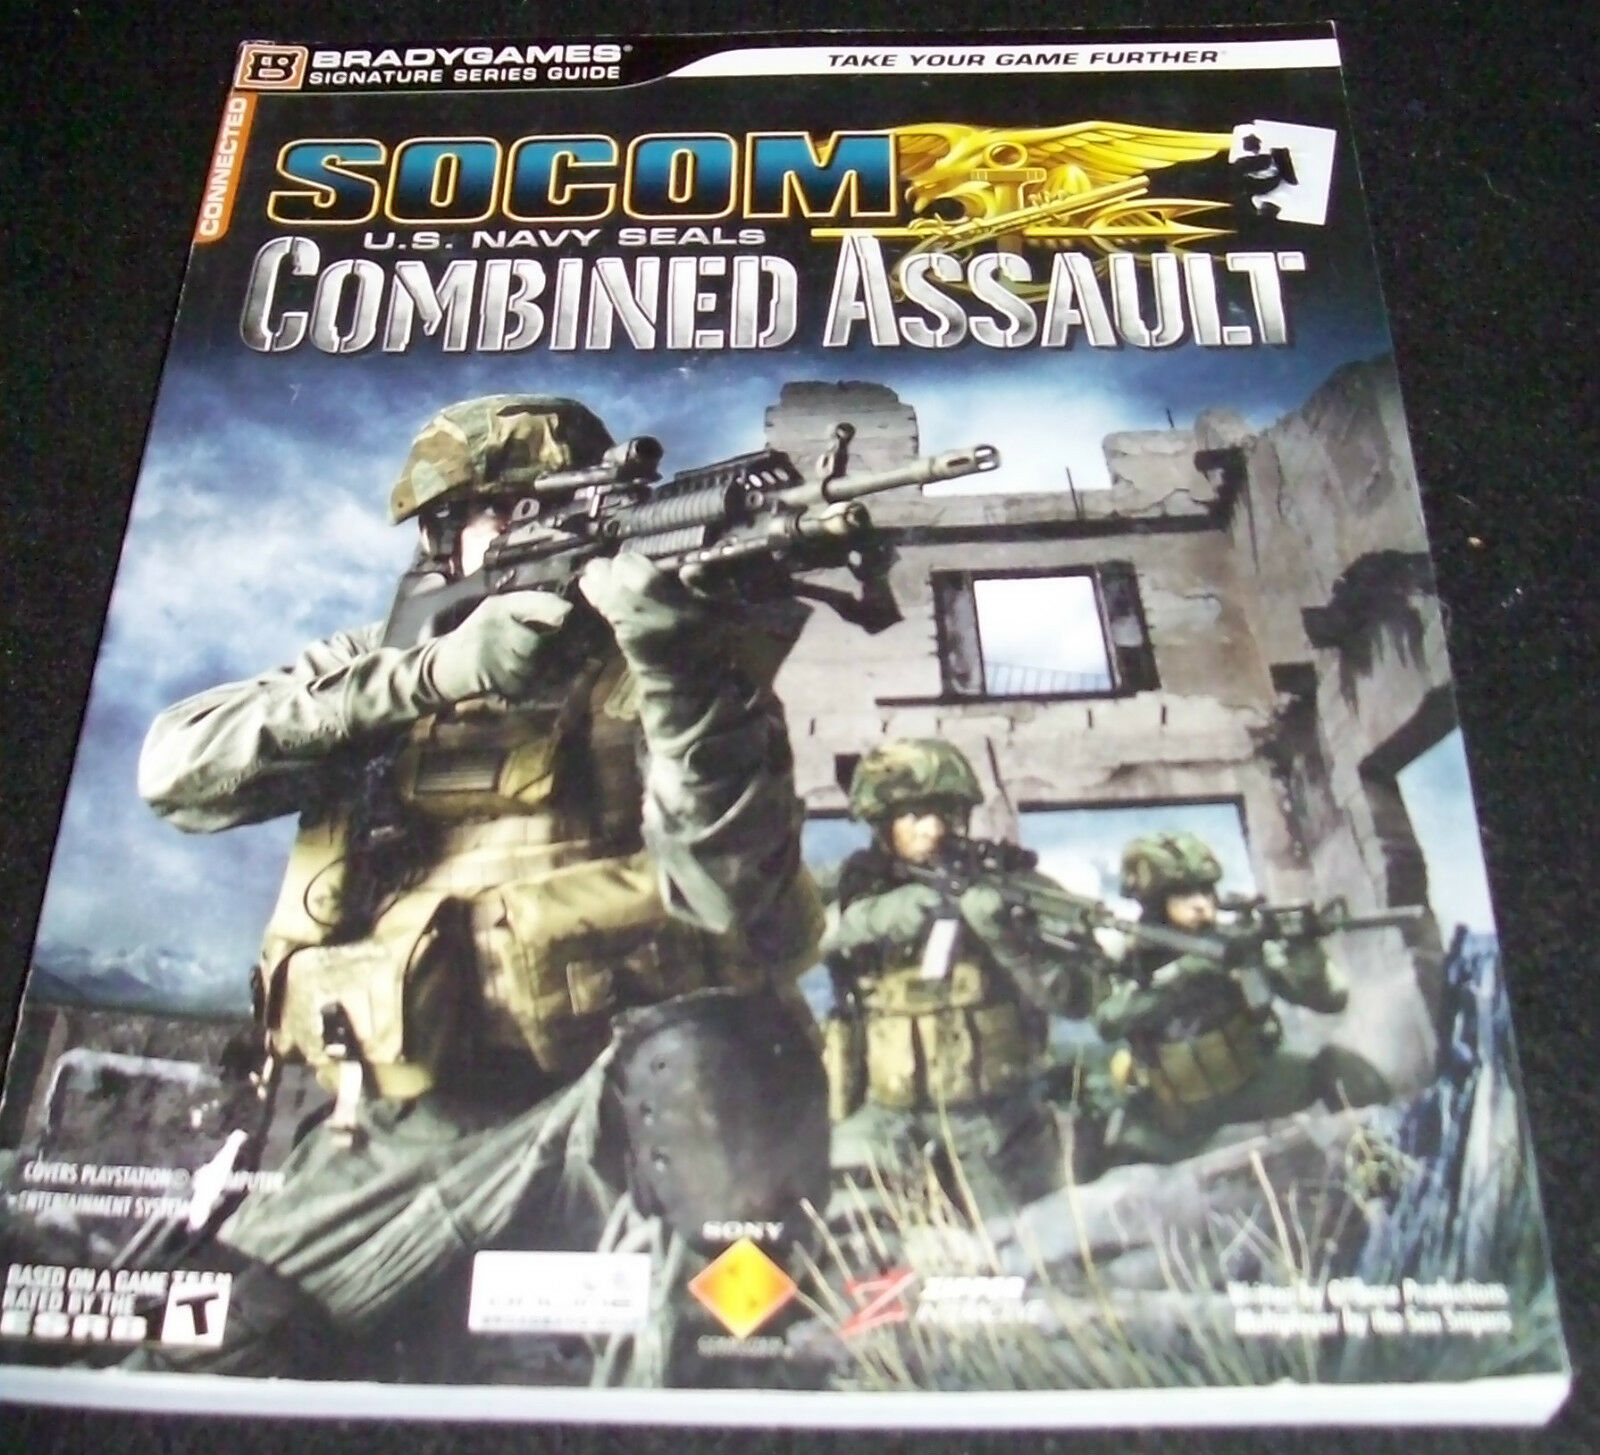 Socom U.S. Navy Seals Combined Assault by Bradygames 2006, Paperback PS 2 Cheat |